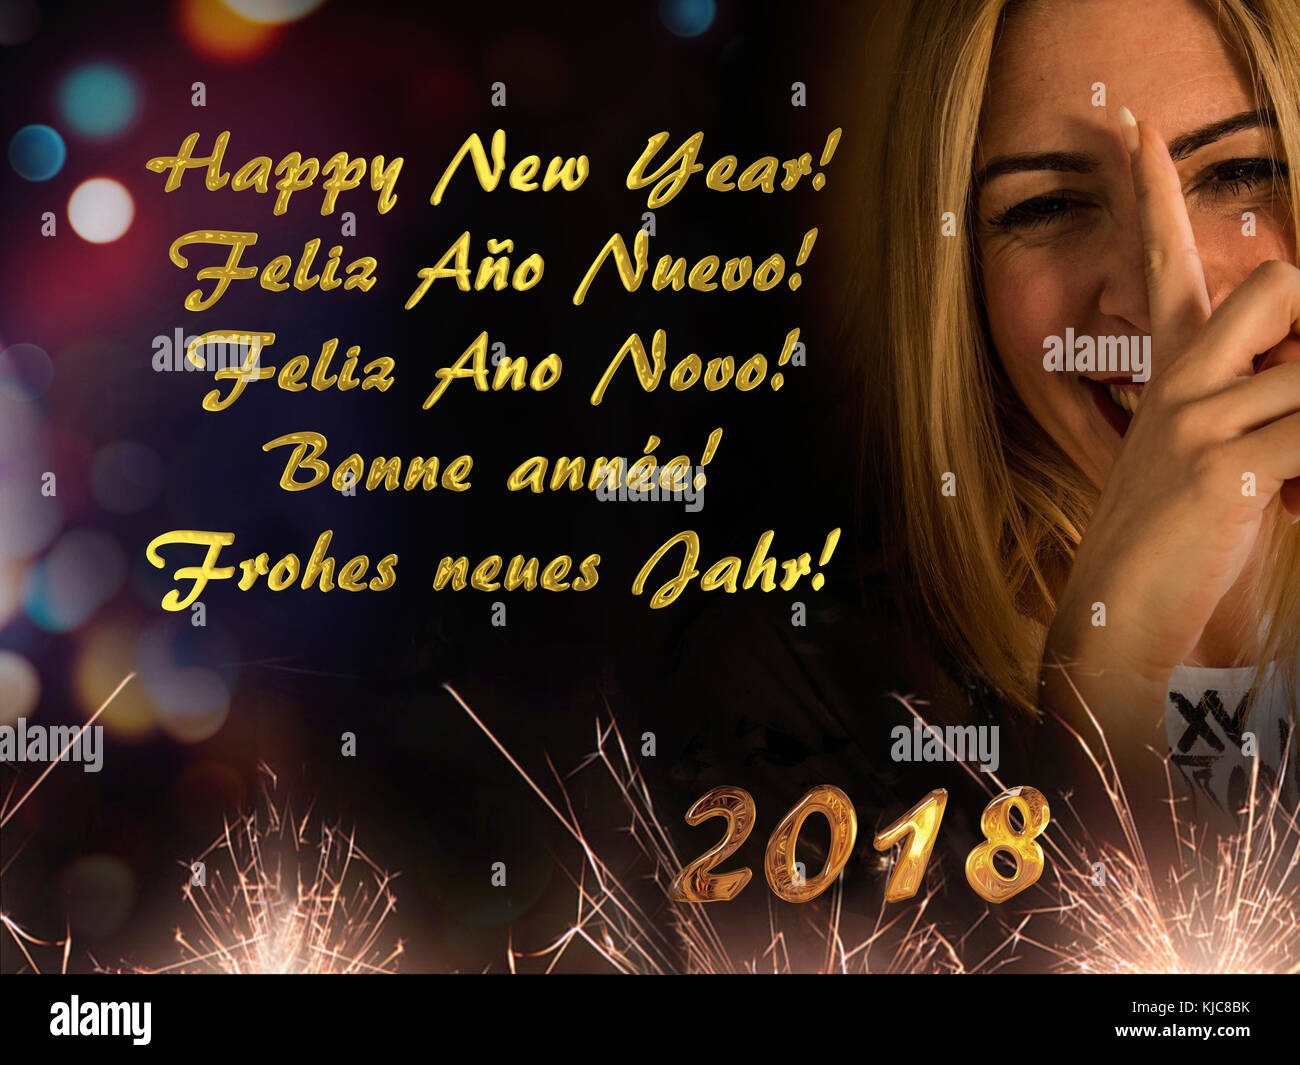 Nice and funny blonde girl wishes you to happy new year 2018 in several languages: English, Spanish, Portuguese, - Stock Image